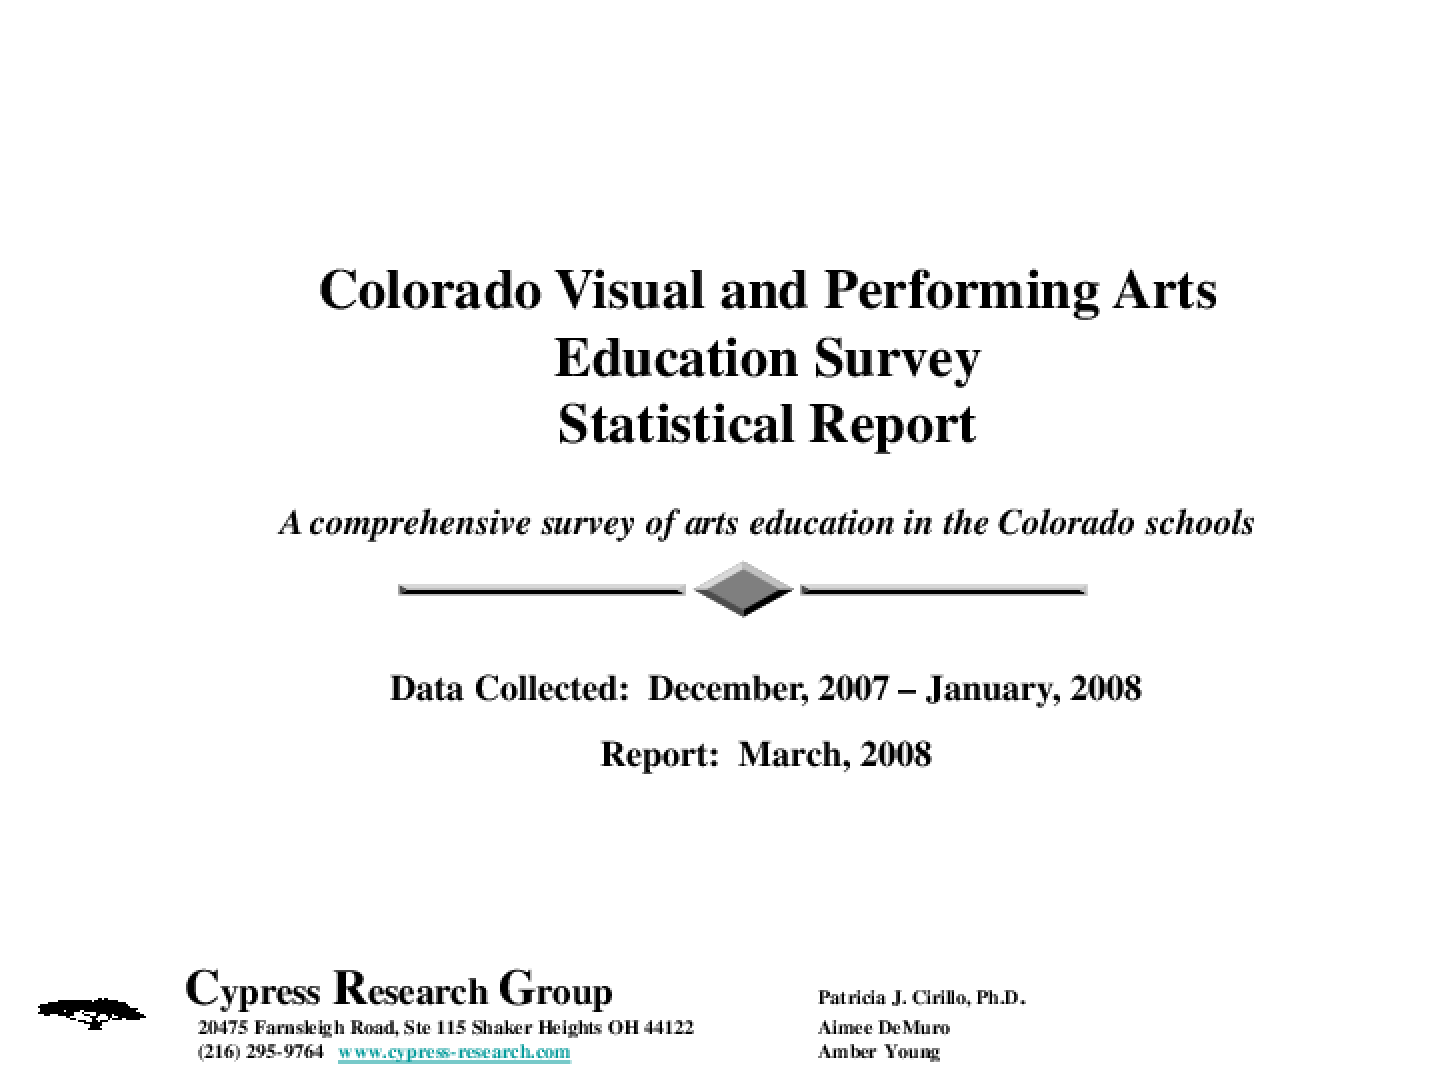 Colorado Visual and Performing Arts Education Survey Statistical Report: A Comprehensive Survey of Arts Education in the Colorado Schools